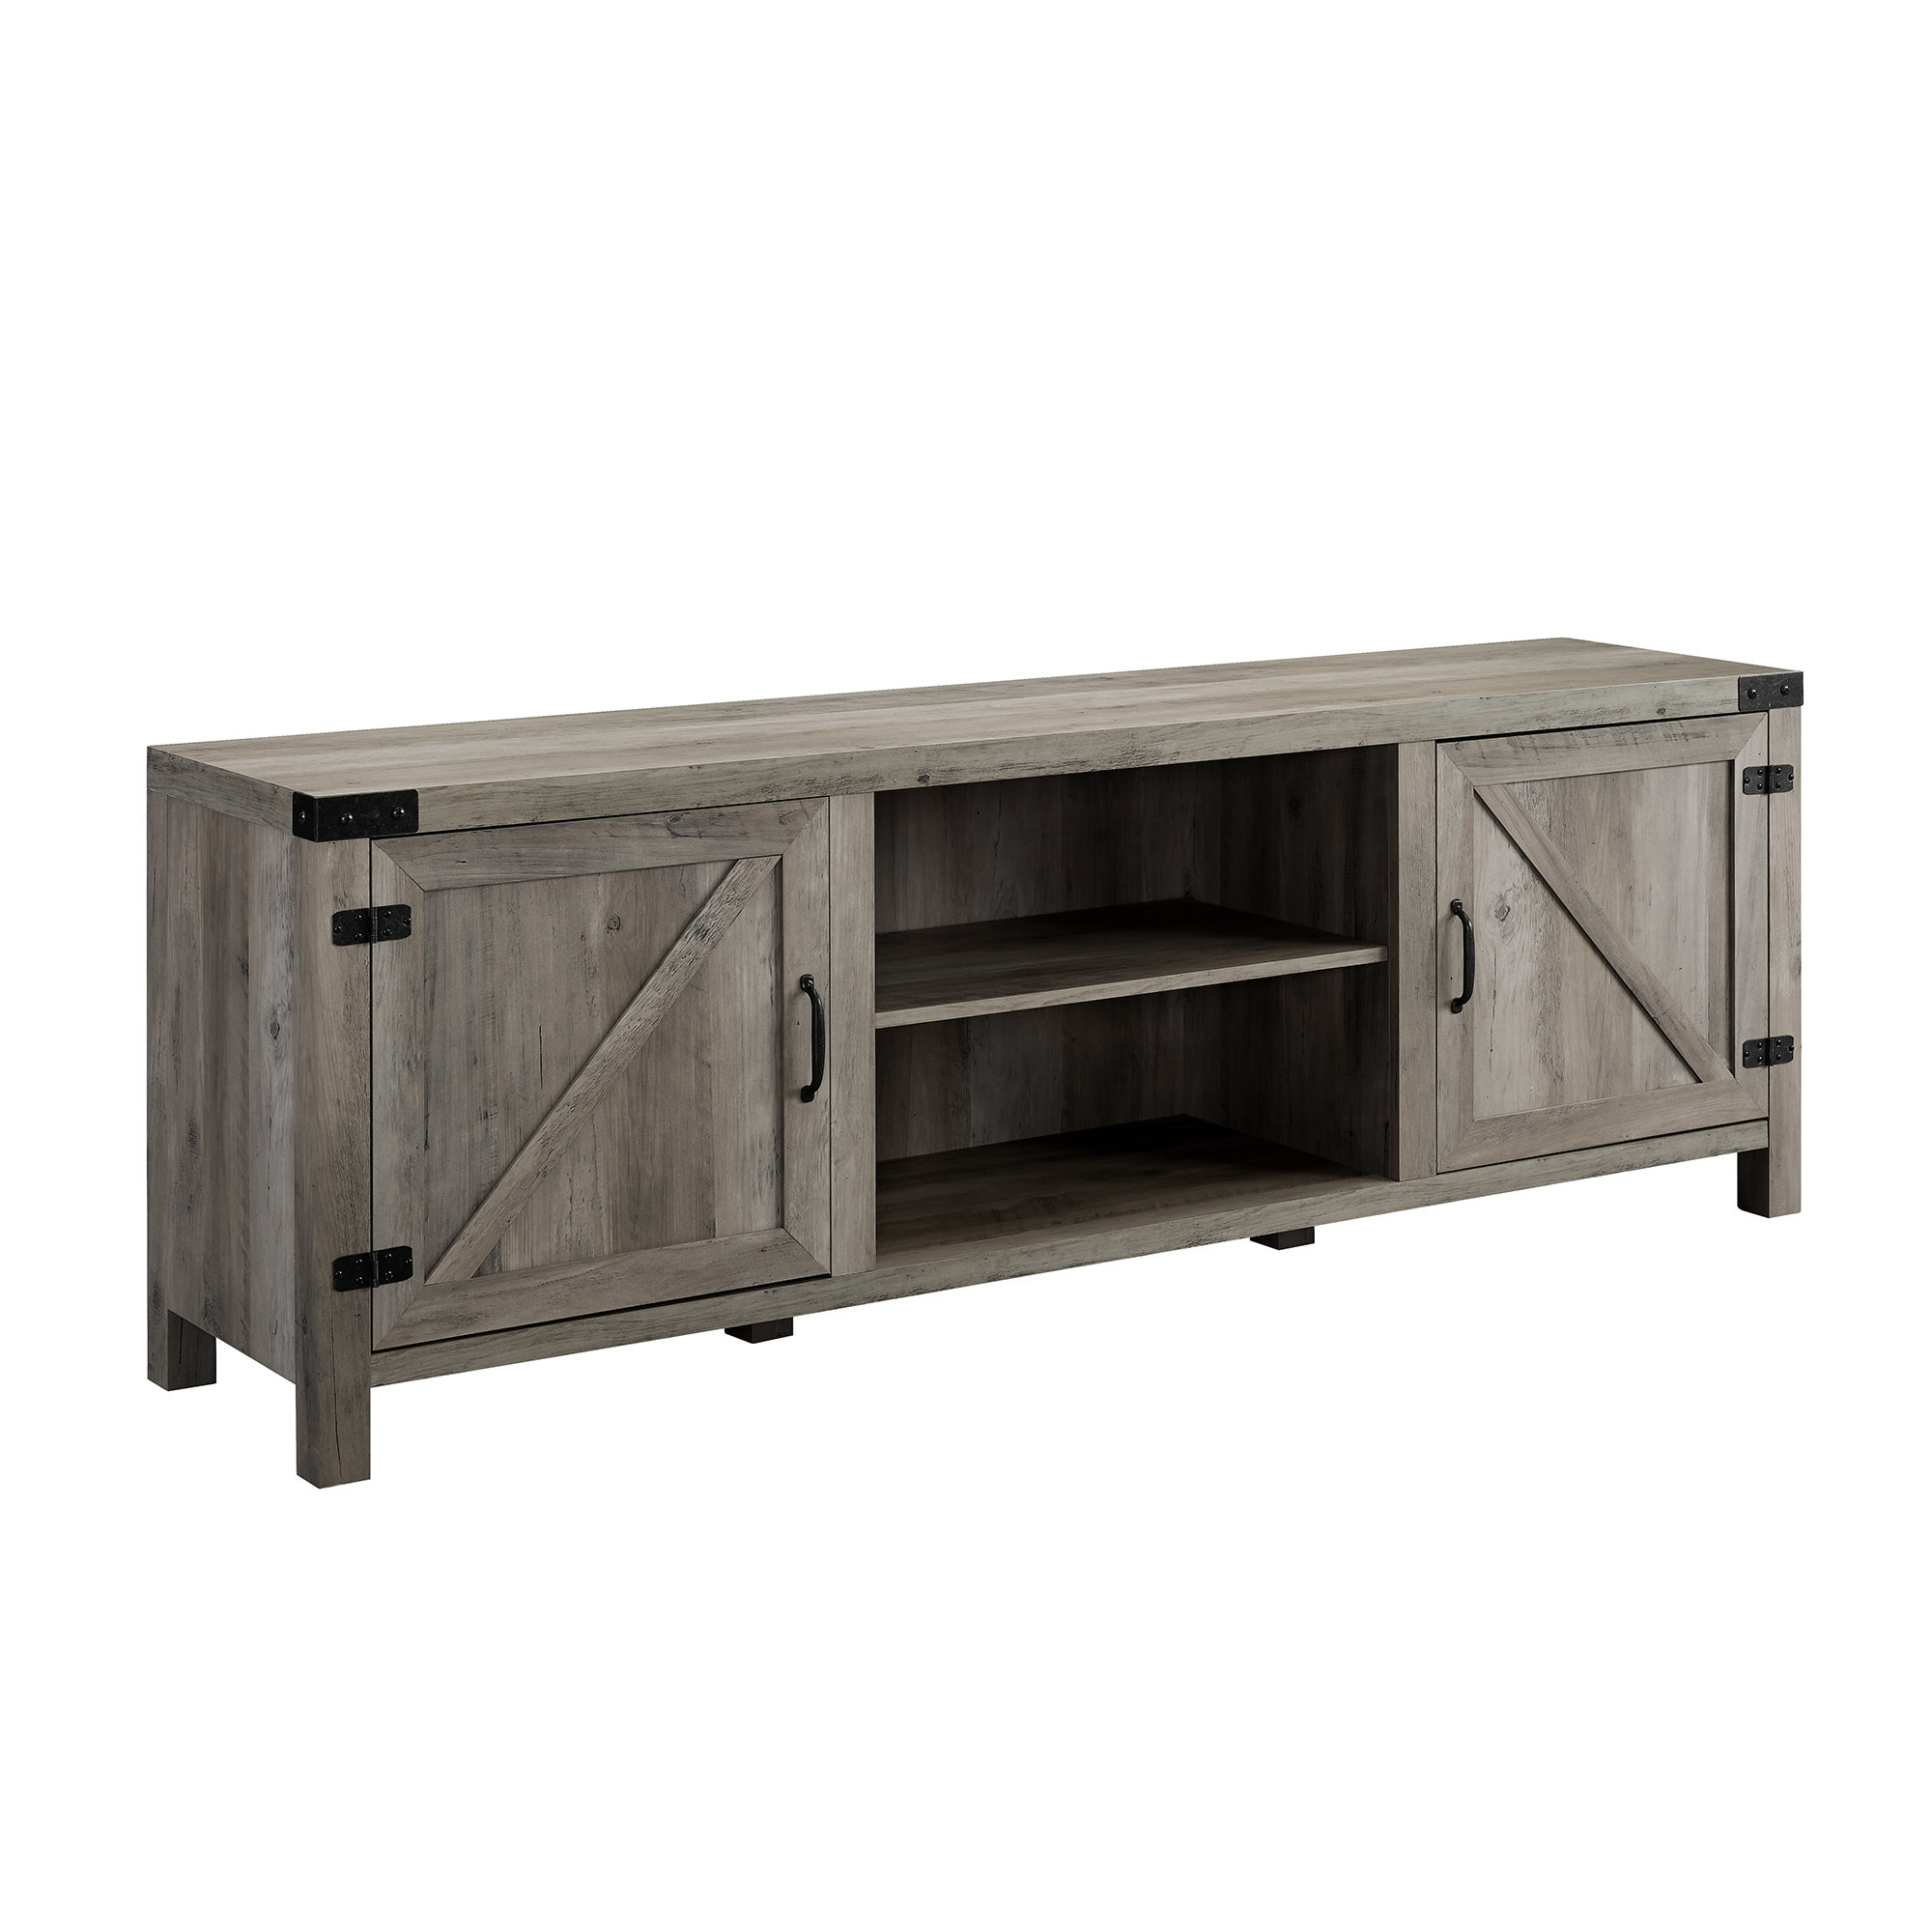 Steinhatchee Reclaimed Pine 4 Door Sideboards Within Widely Used Reclaimed Wood Media Cabinet (Gallery 11 of 20)